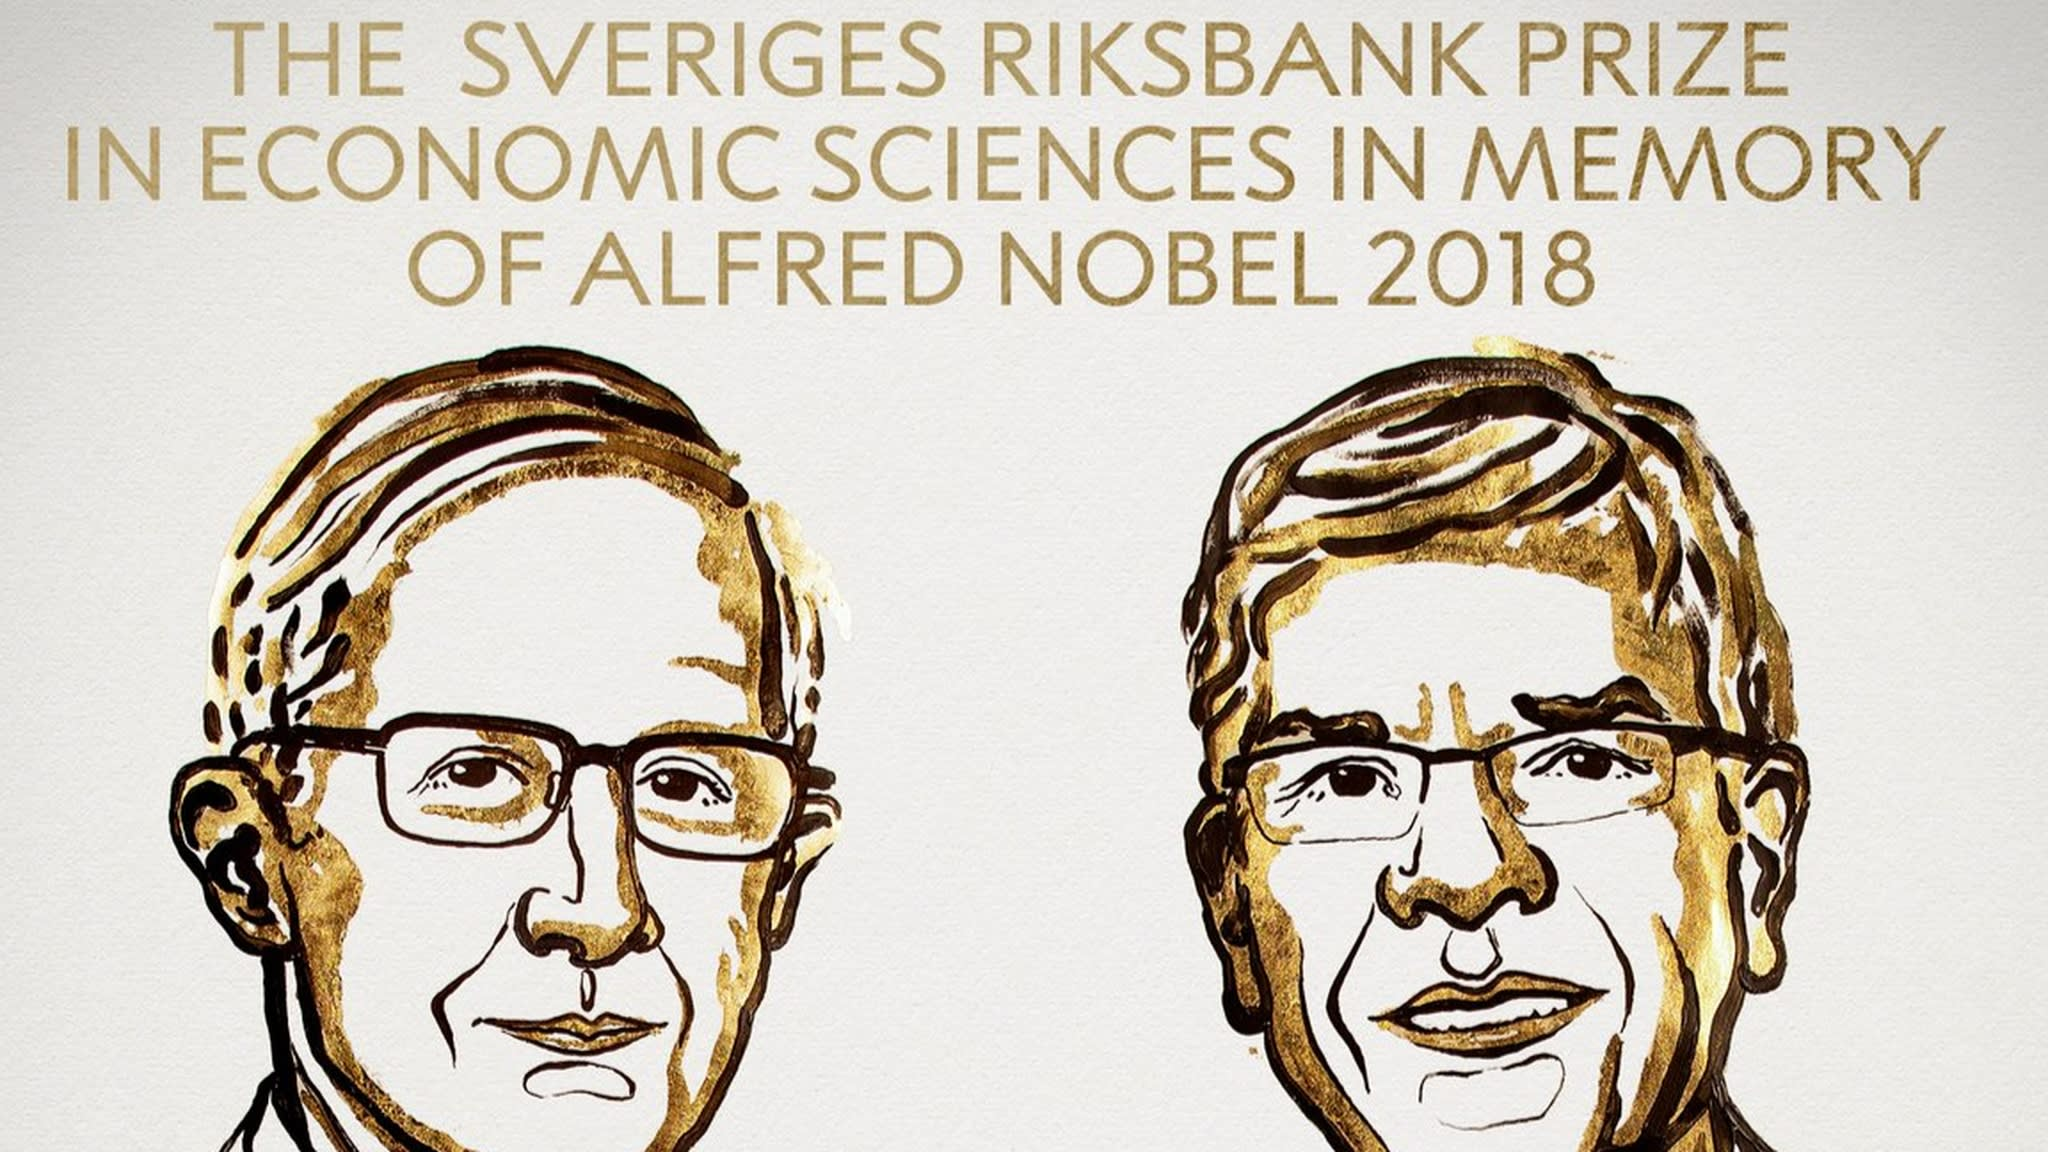 Economics Nobel awarded for work on climate change and innovation